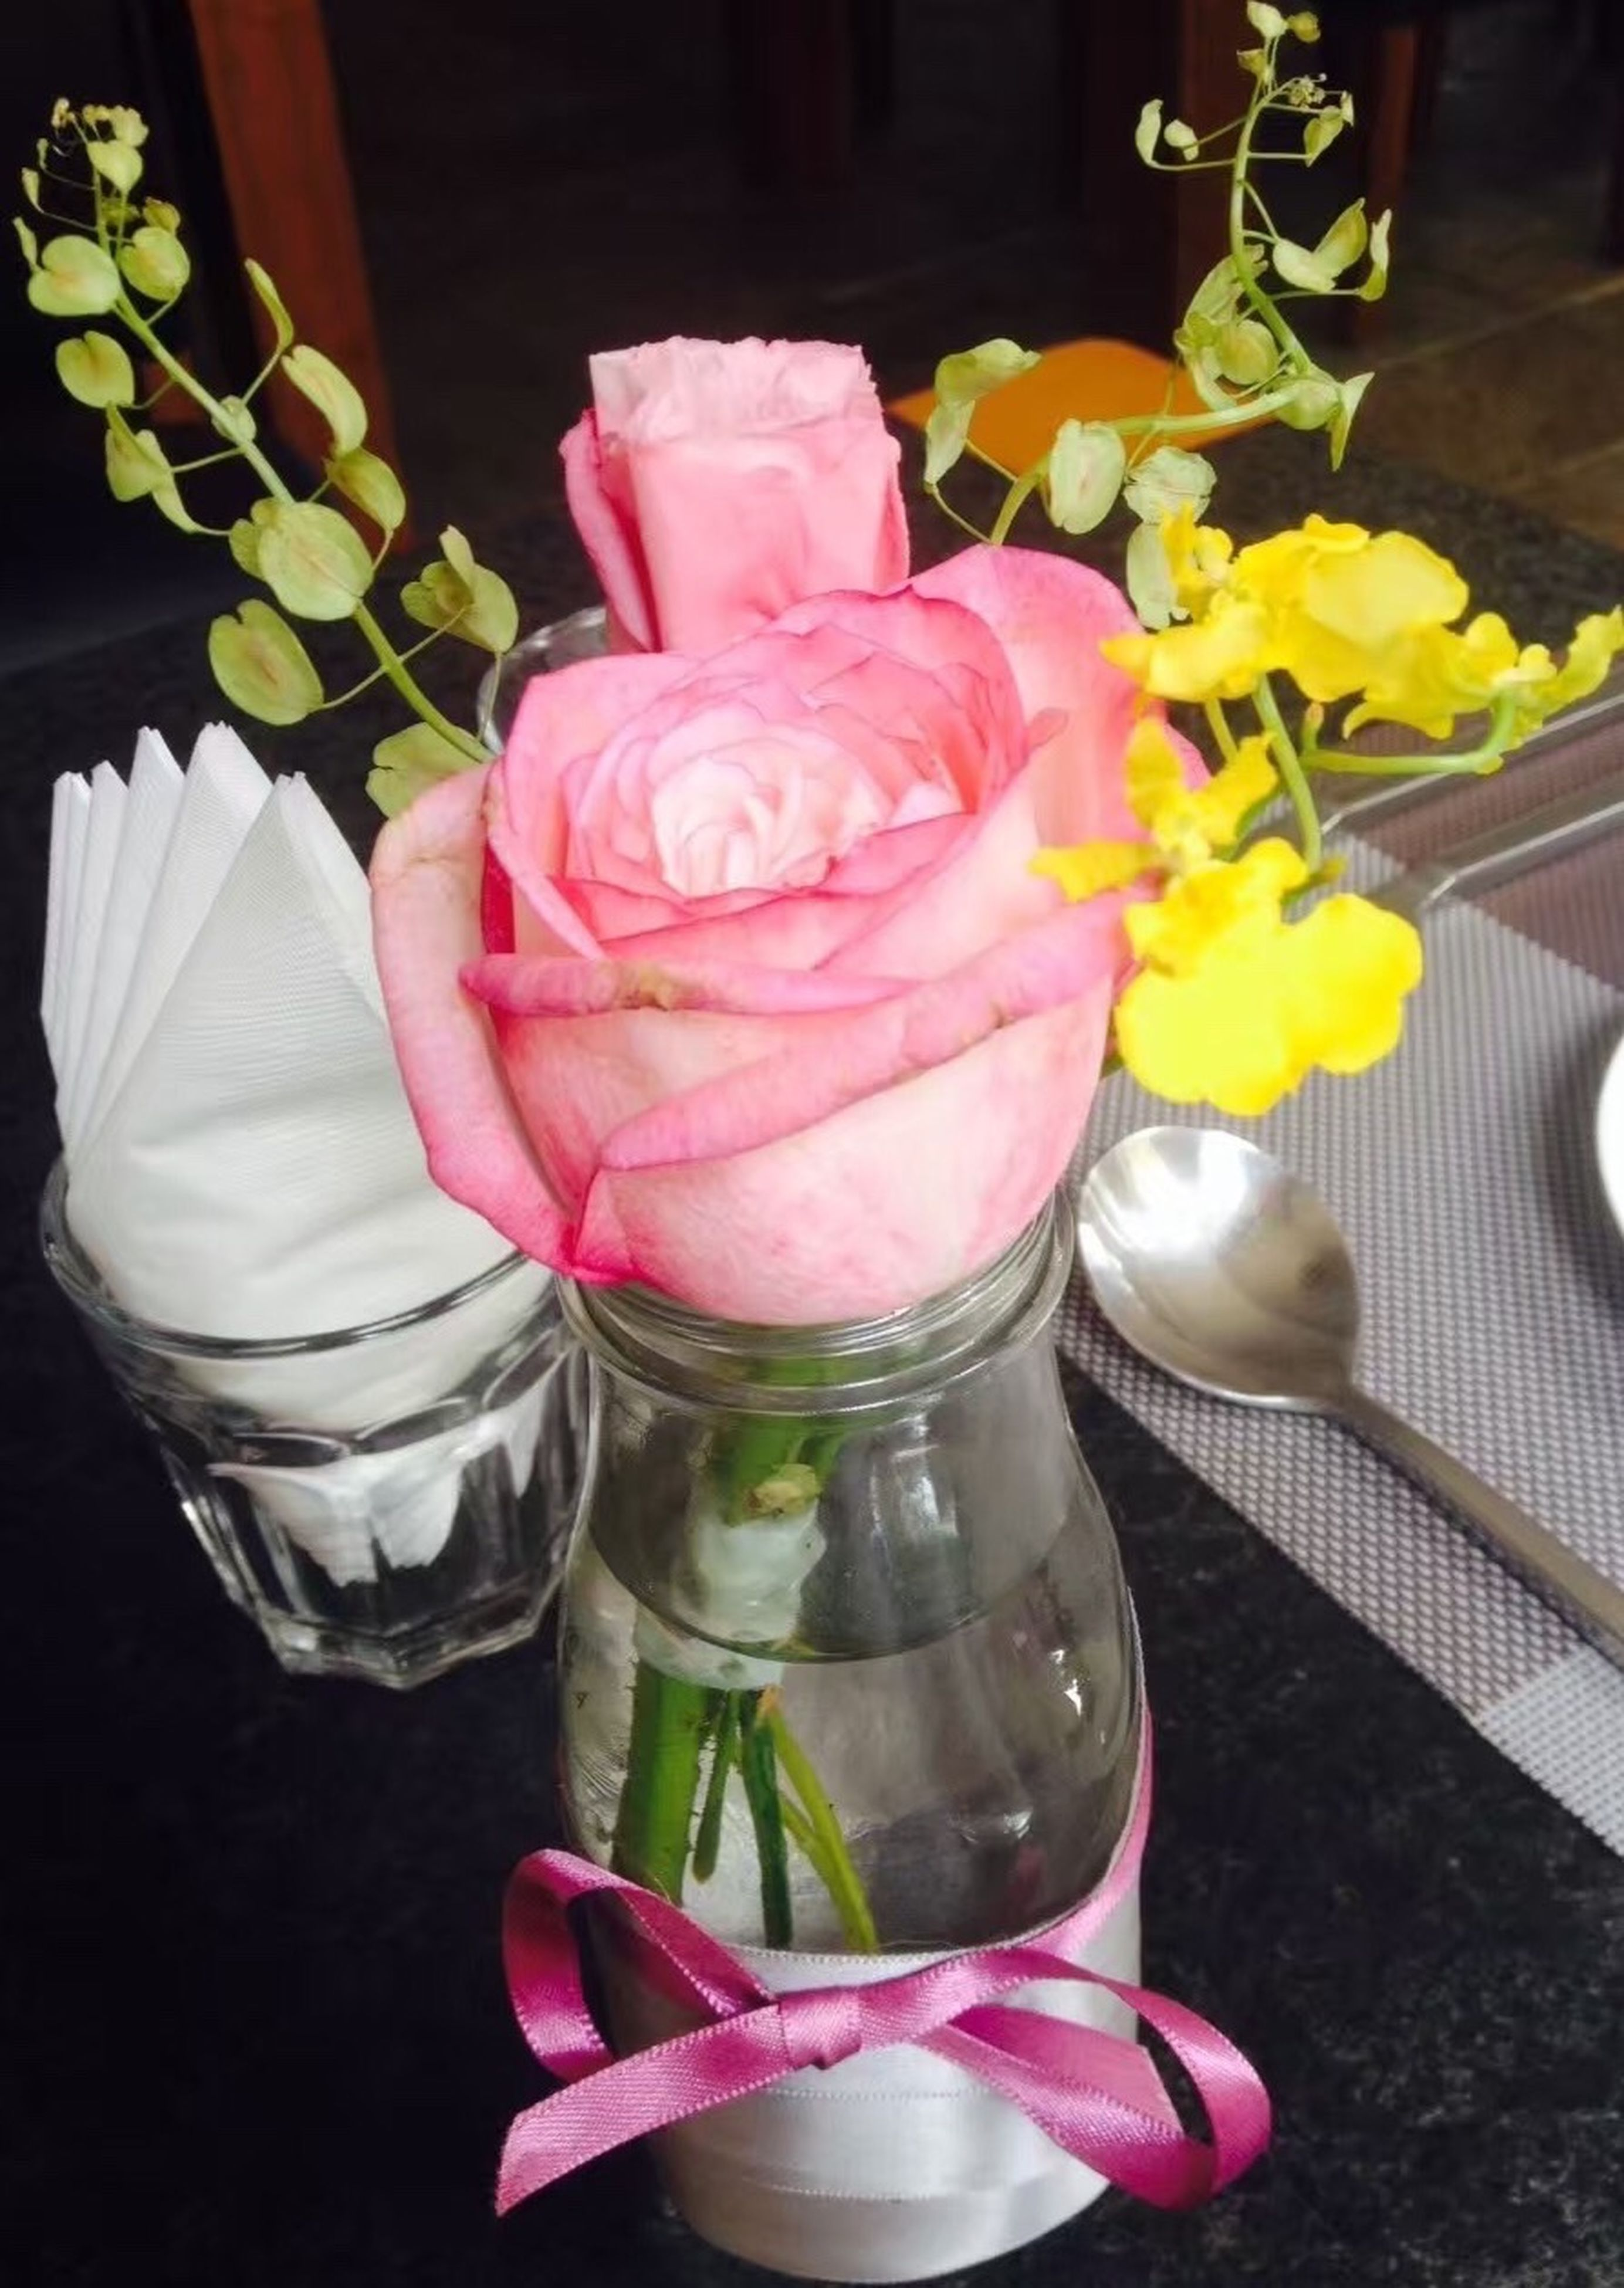 freshness, flower, close-up, indoors, still life, rose - flower, table, fragility, variation, multi colored, unhealthy eating, petal, bouquet, arrangement, flower arrangement, flower head, bunch of flowers, no people, large group of objects, temptation, indulgence